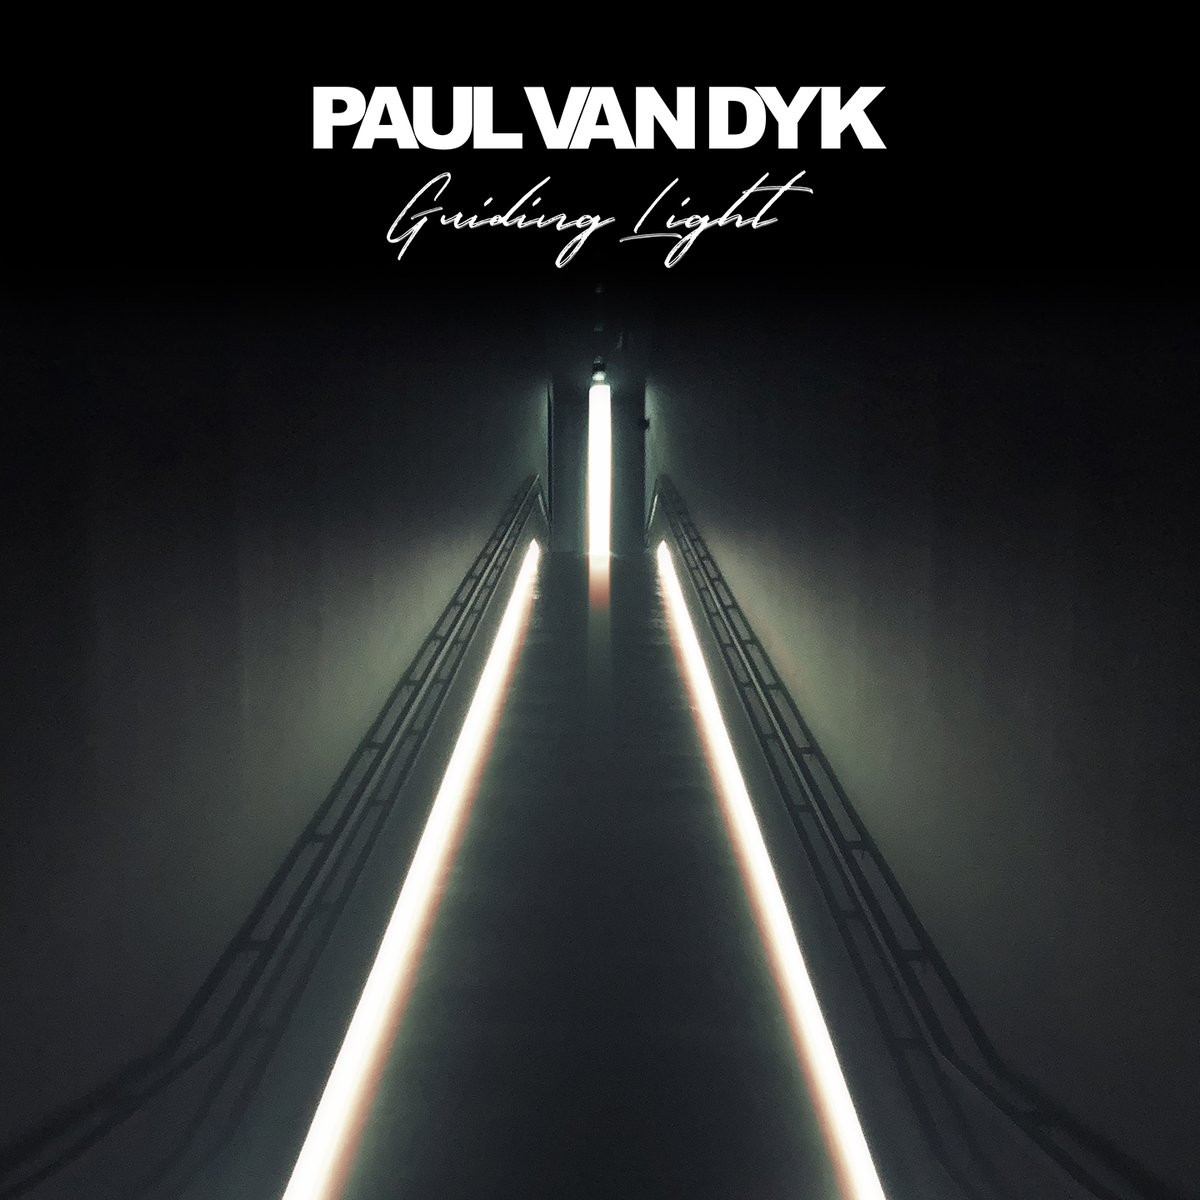 Paul van Dyk Guiding Light Album Cover